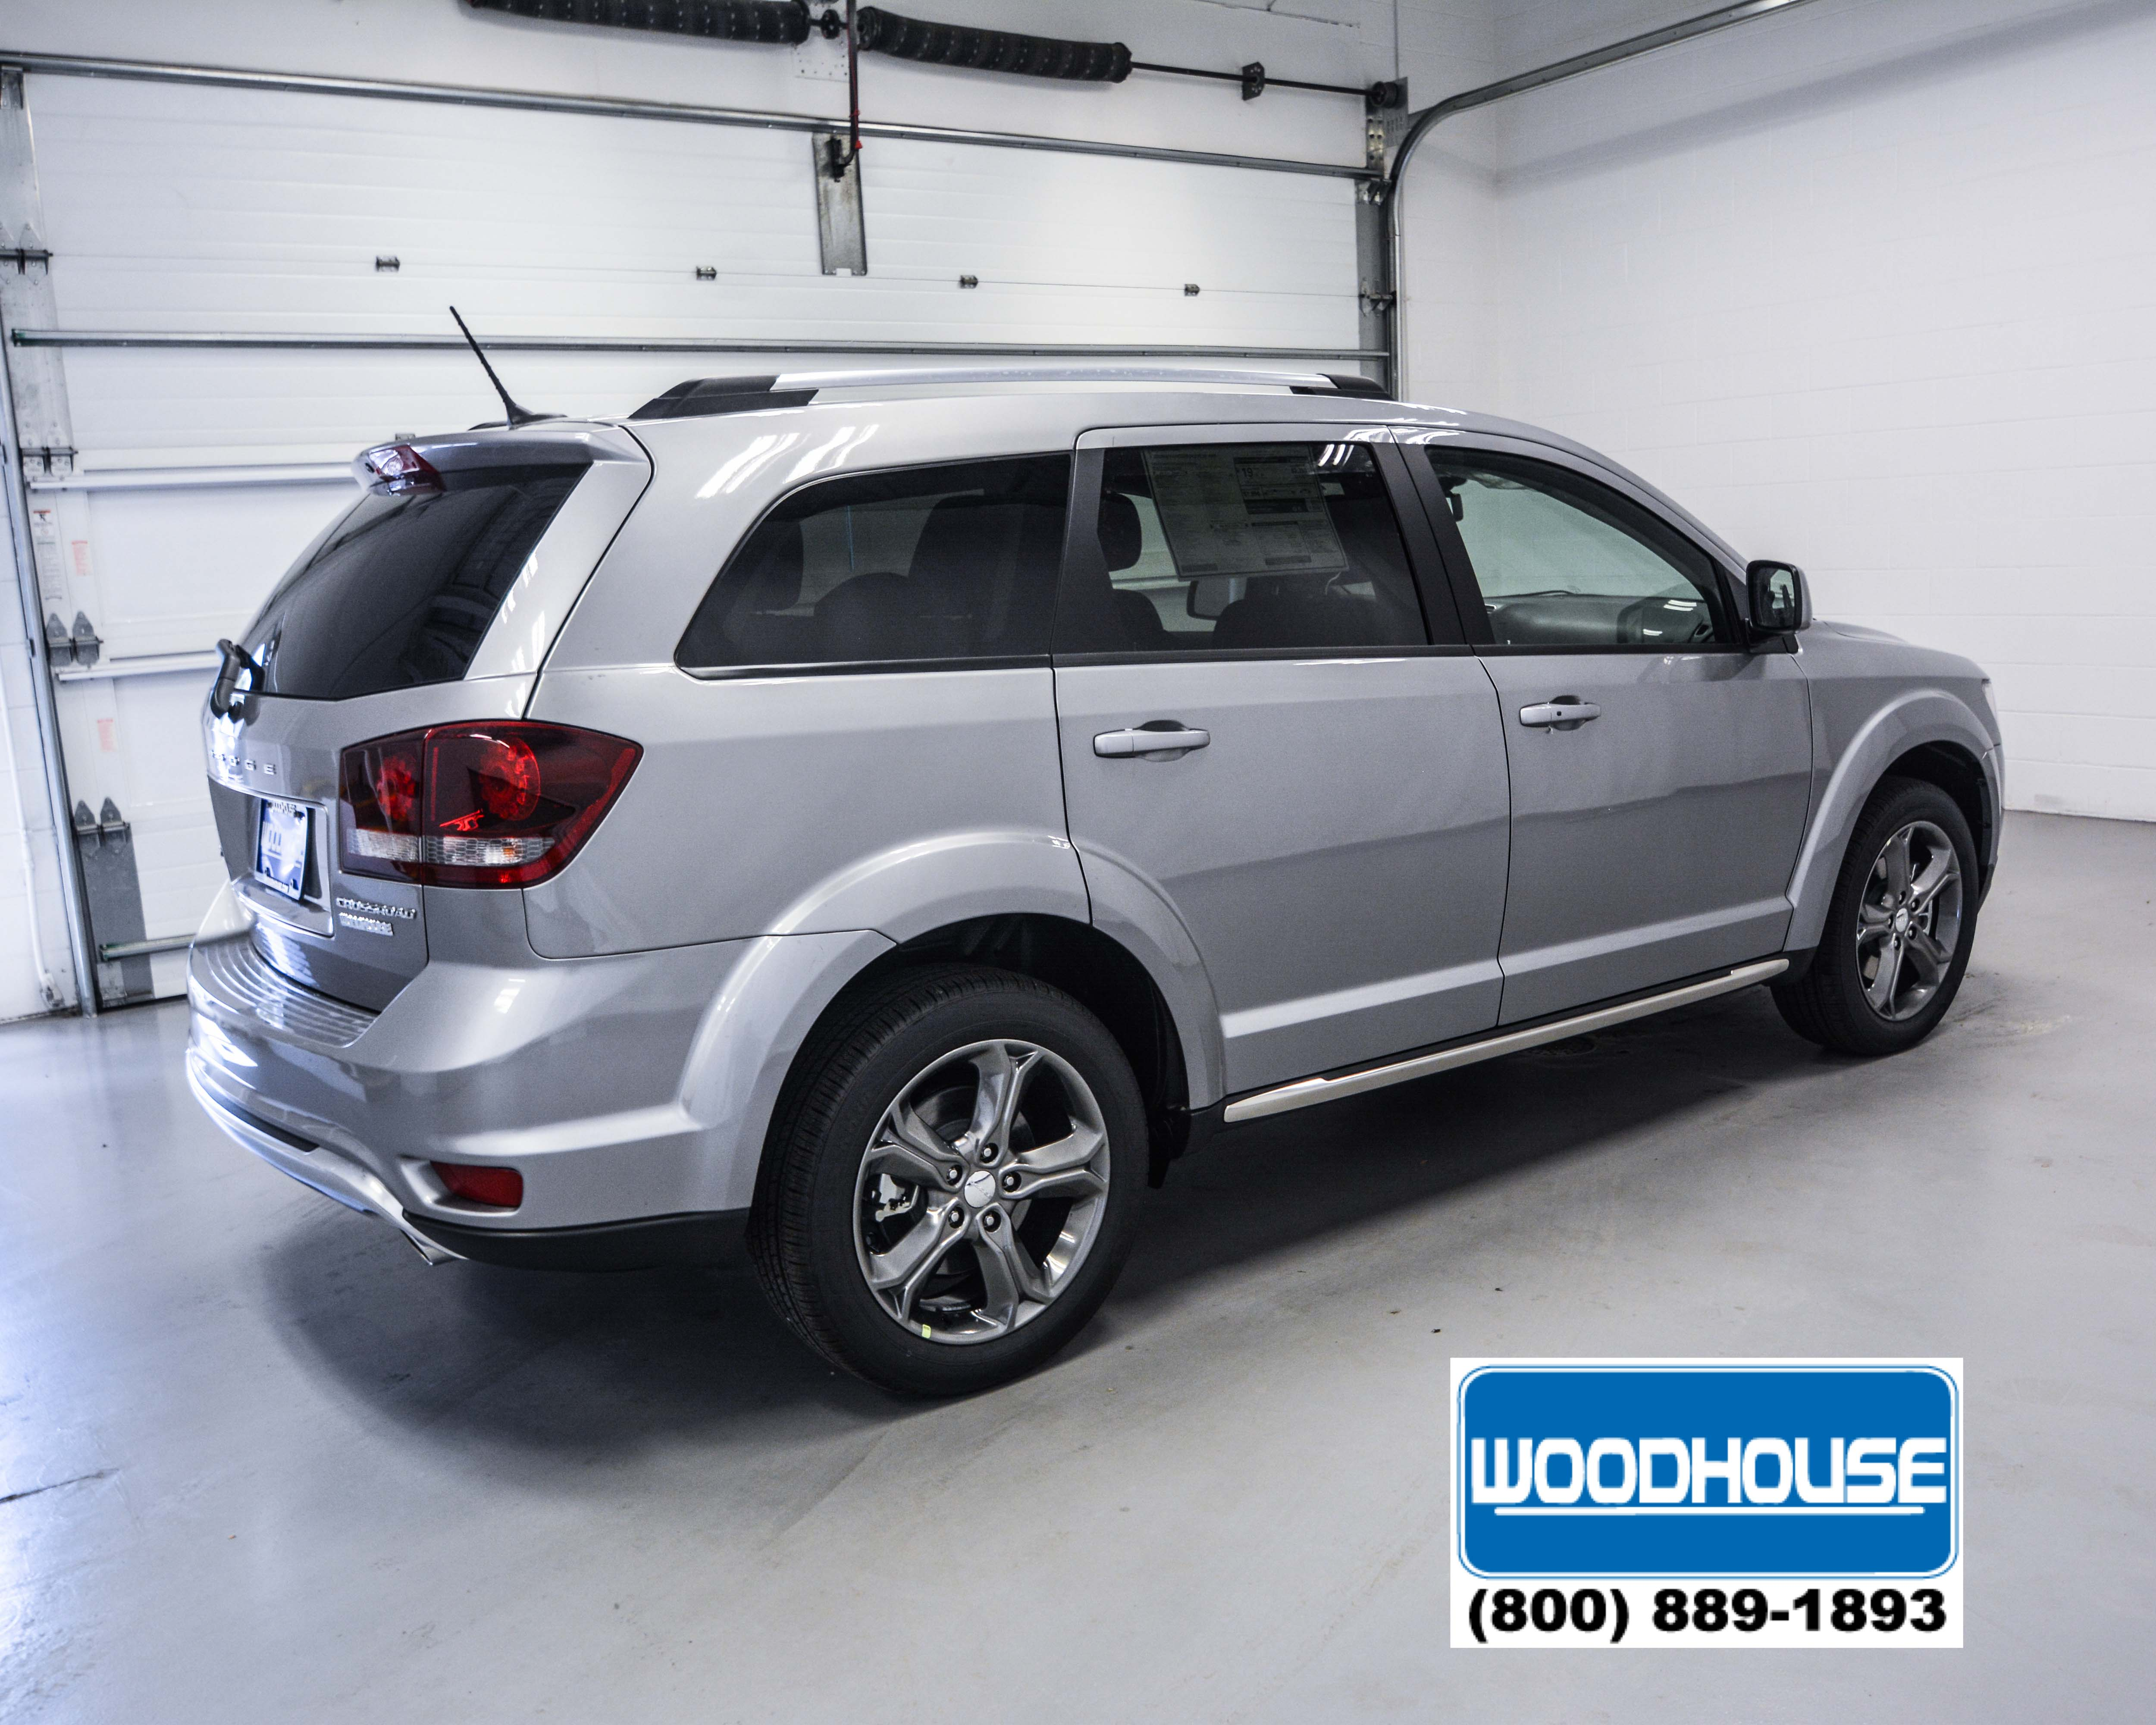 Gmc Parts Sioux City >> Woodhouse Chrysler Dodge Jeep Ram | Upcomingcarshq.com